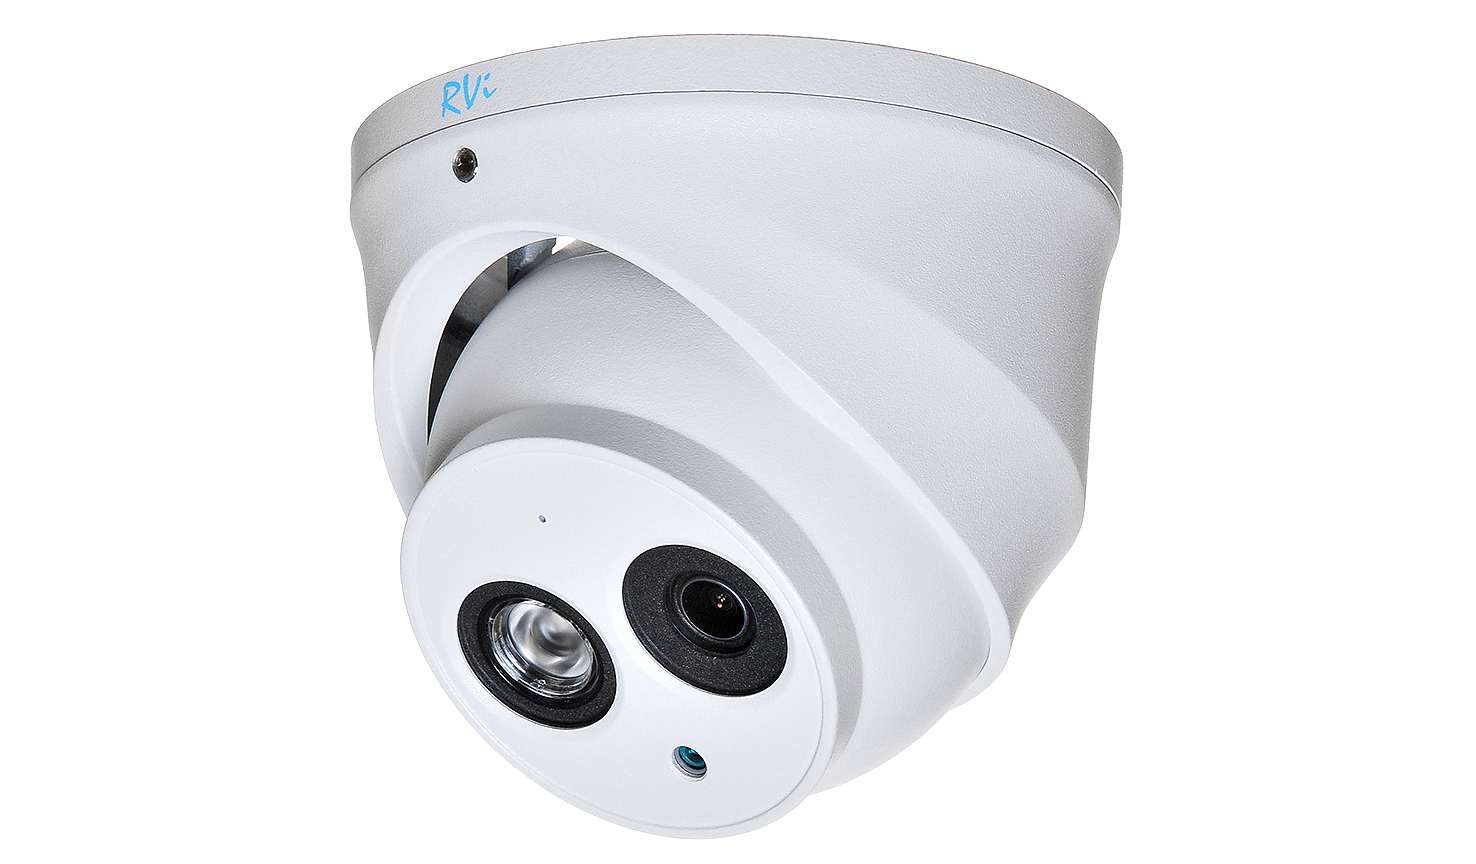 Уличные IP камеры Rvi RVi-1ACE402A (6.0) white